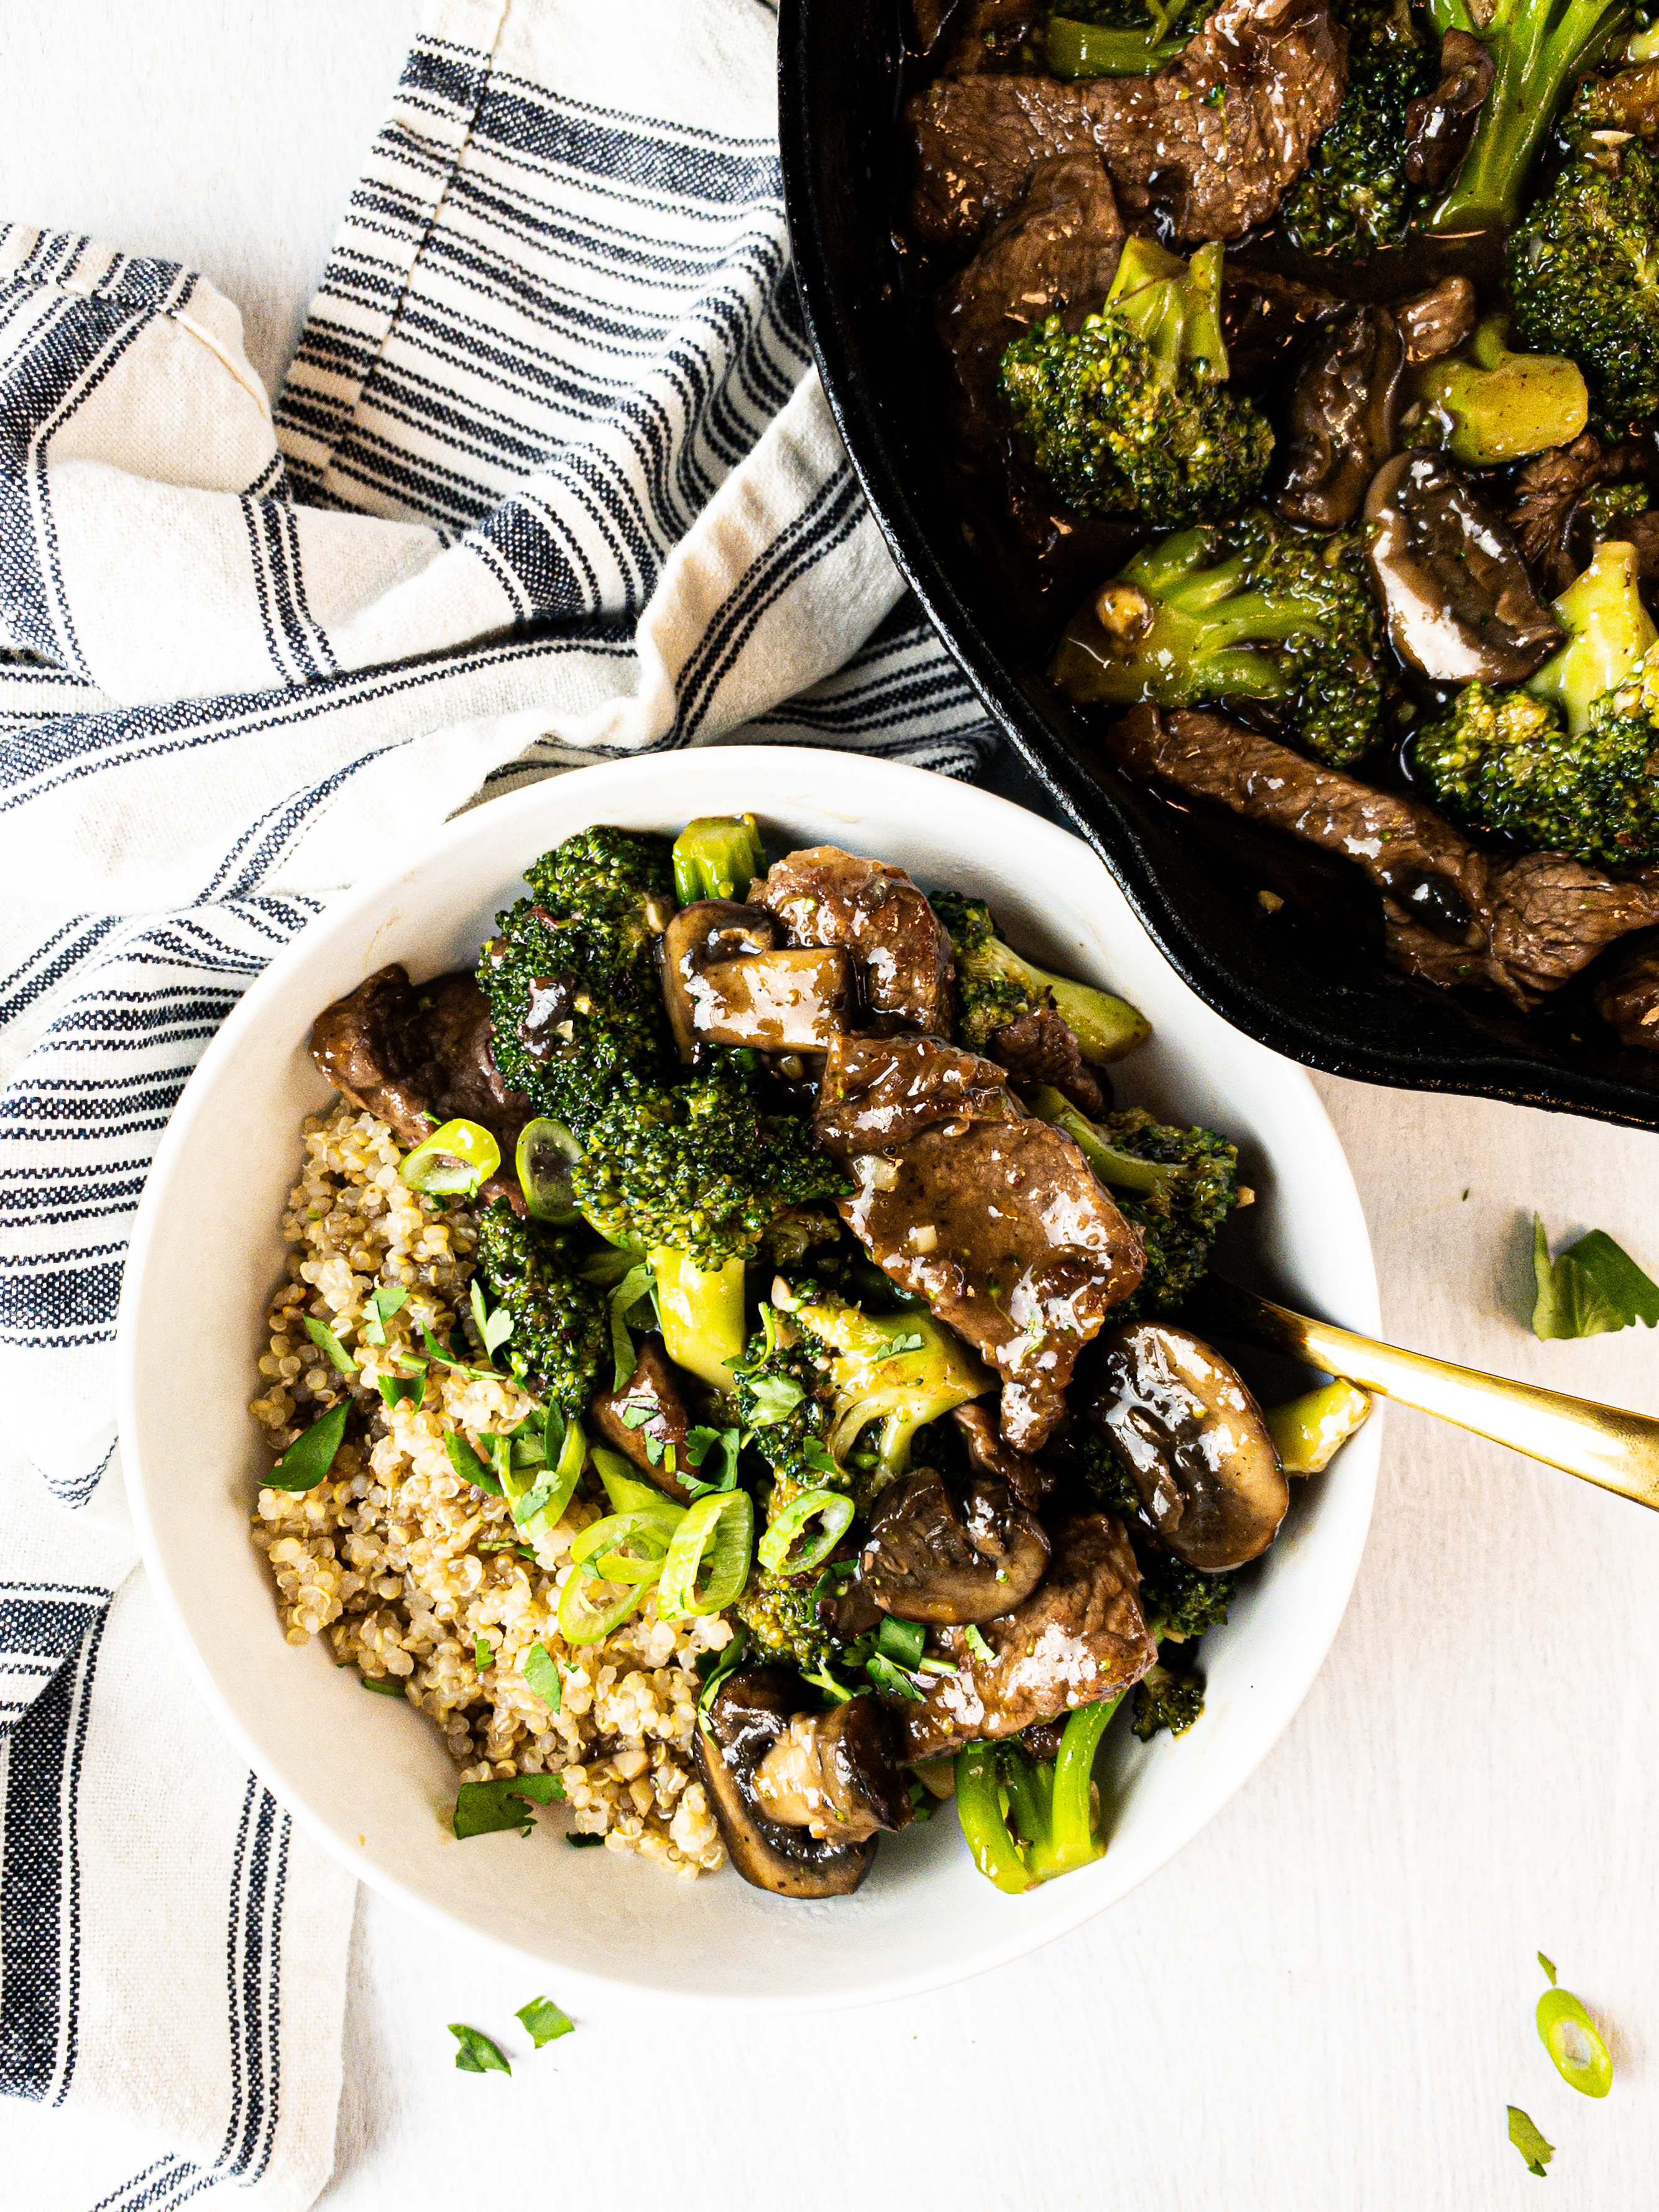 healthy paleo beef broccoli and mushroom stir-fry